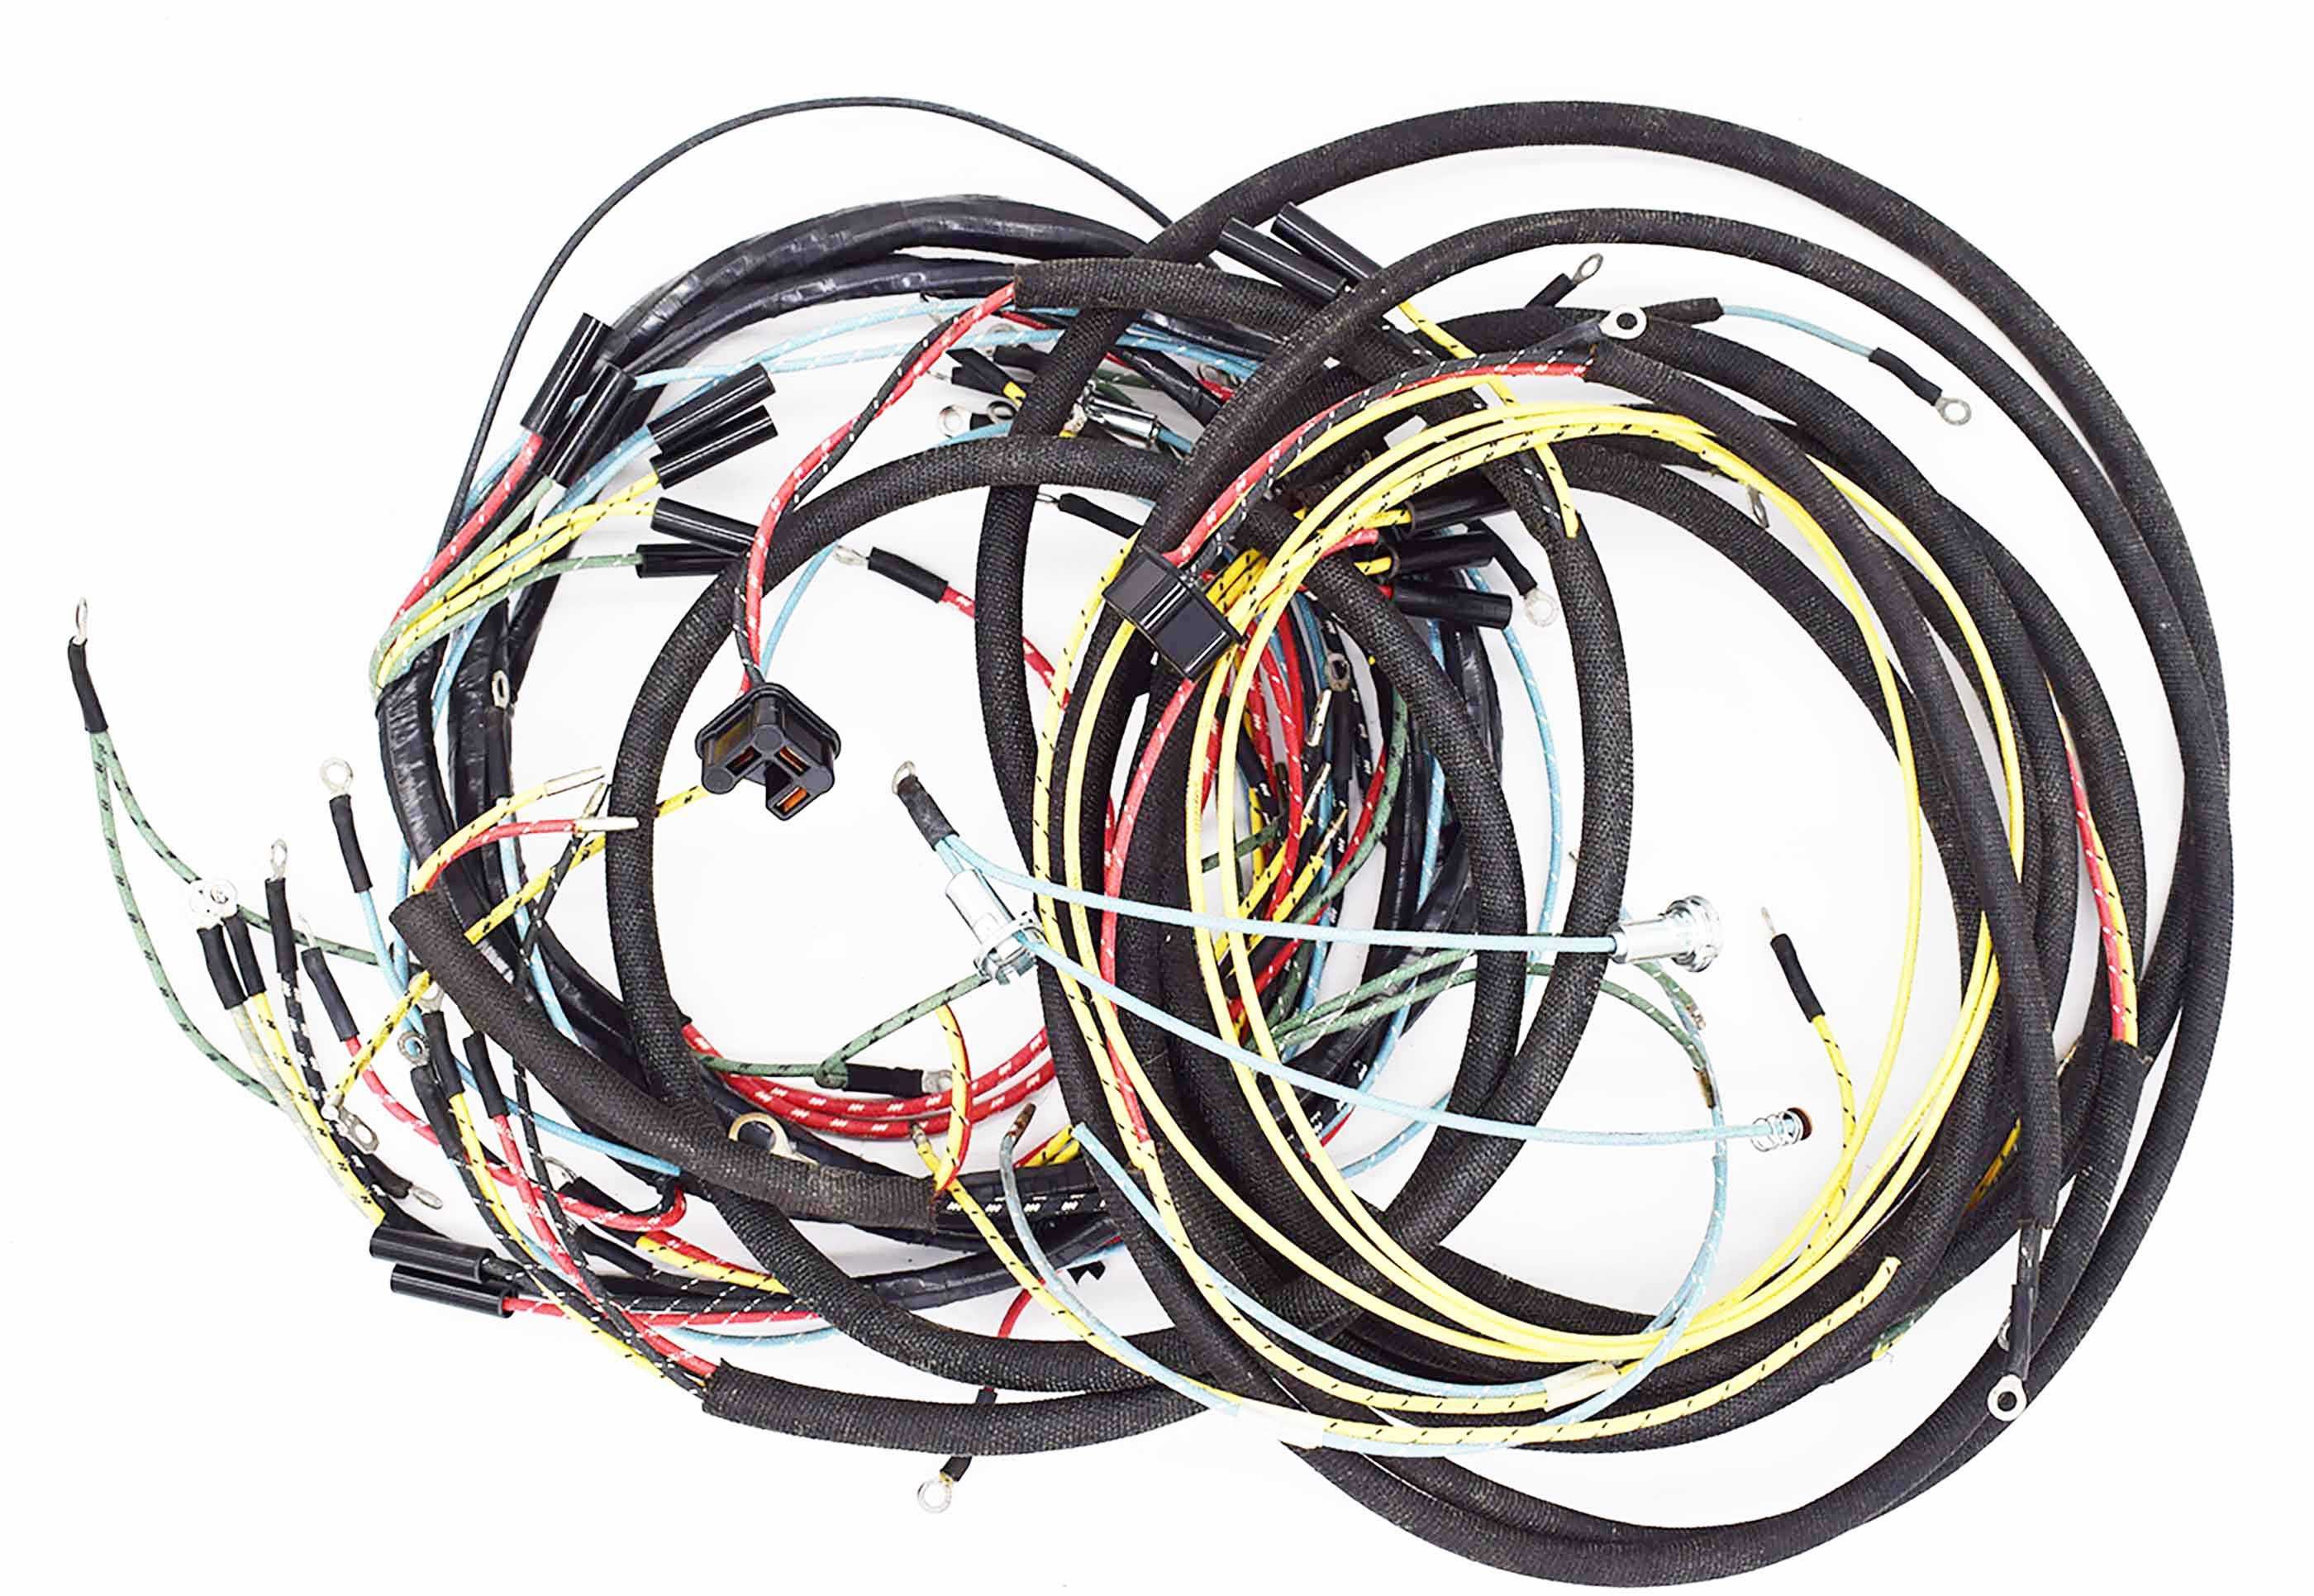 Wiring Harness | Jeepster Man Inc on